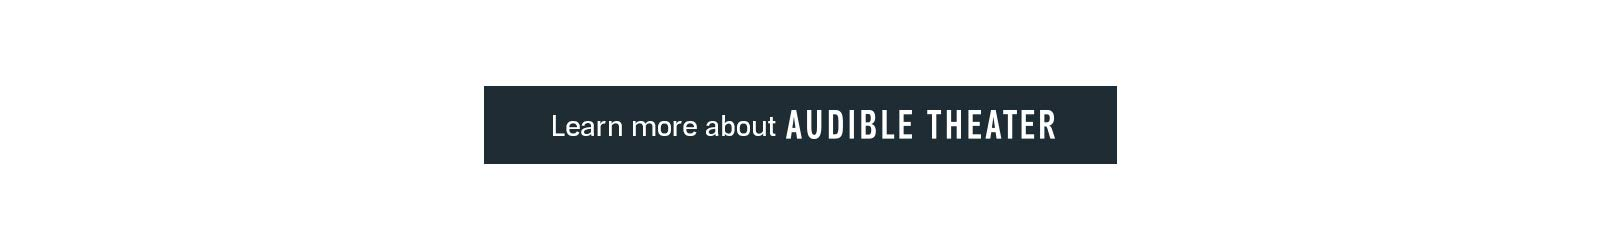 Learn more about Audible Theater.